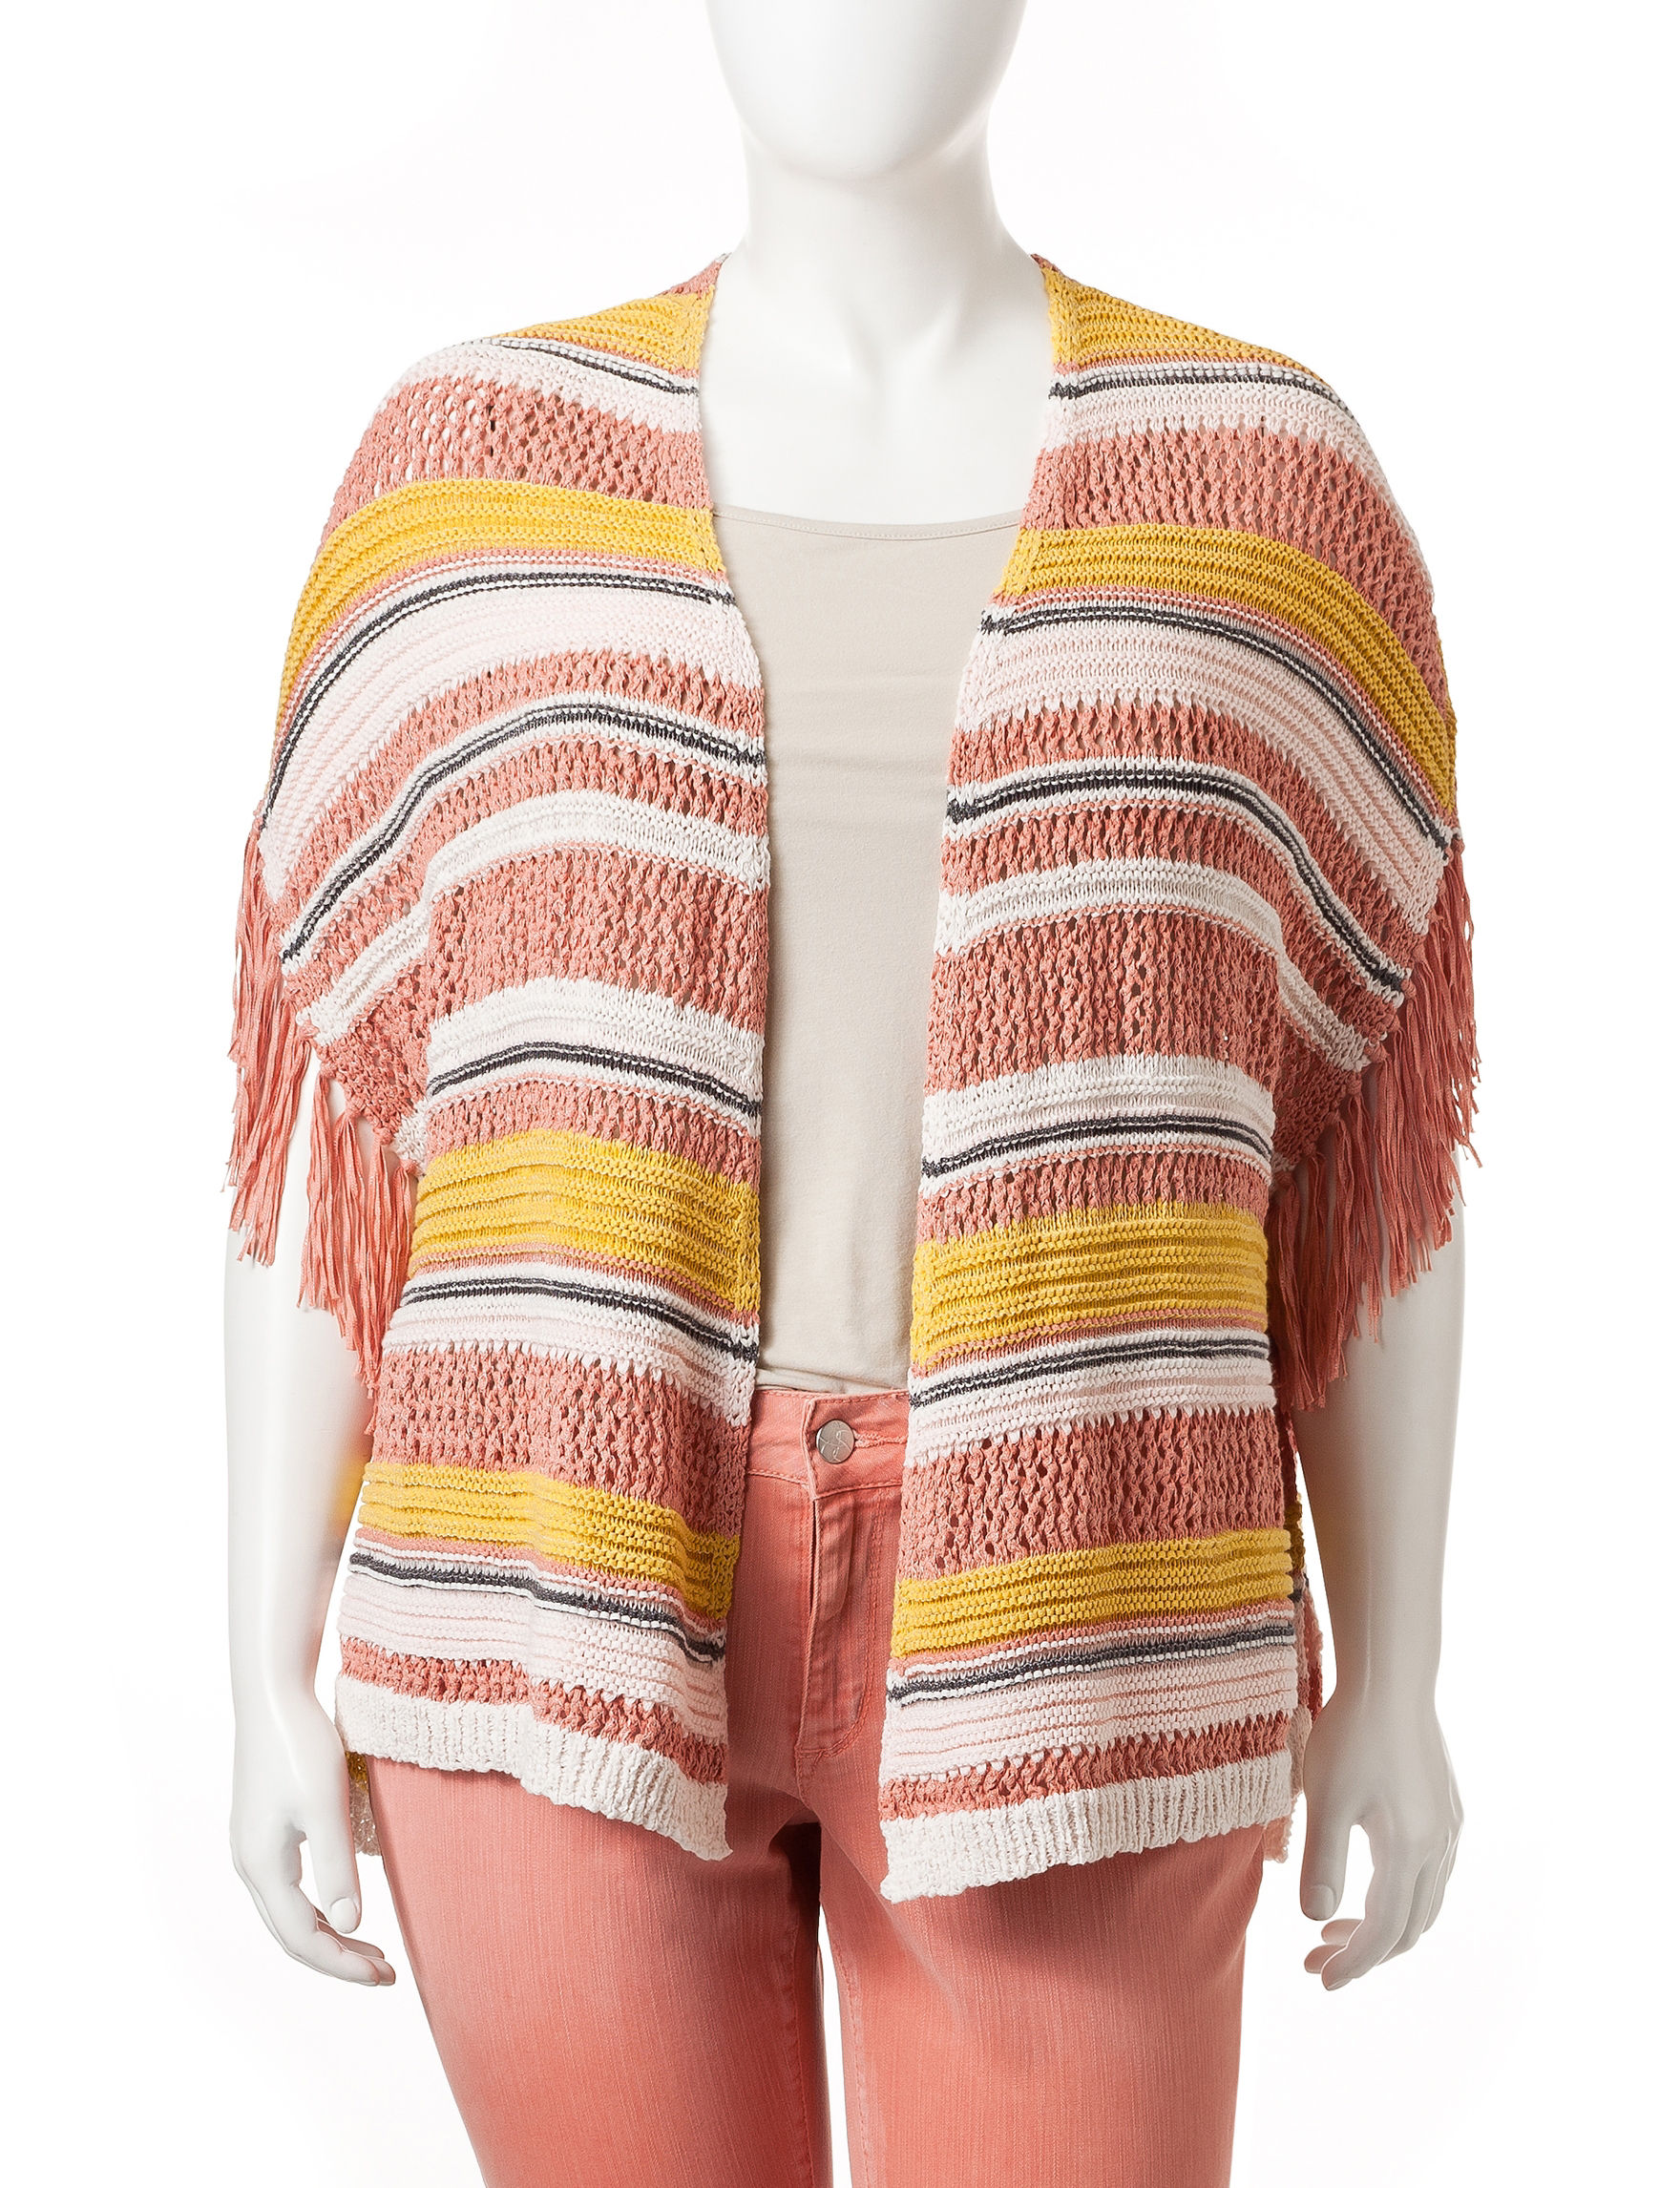 Jessica Simpson Pink Multi Cardigans Sweaters